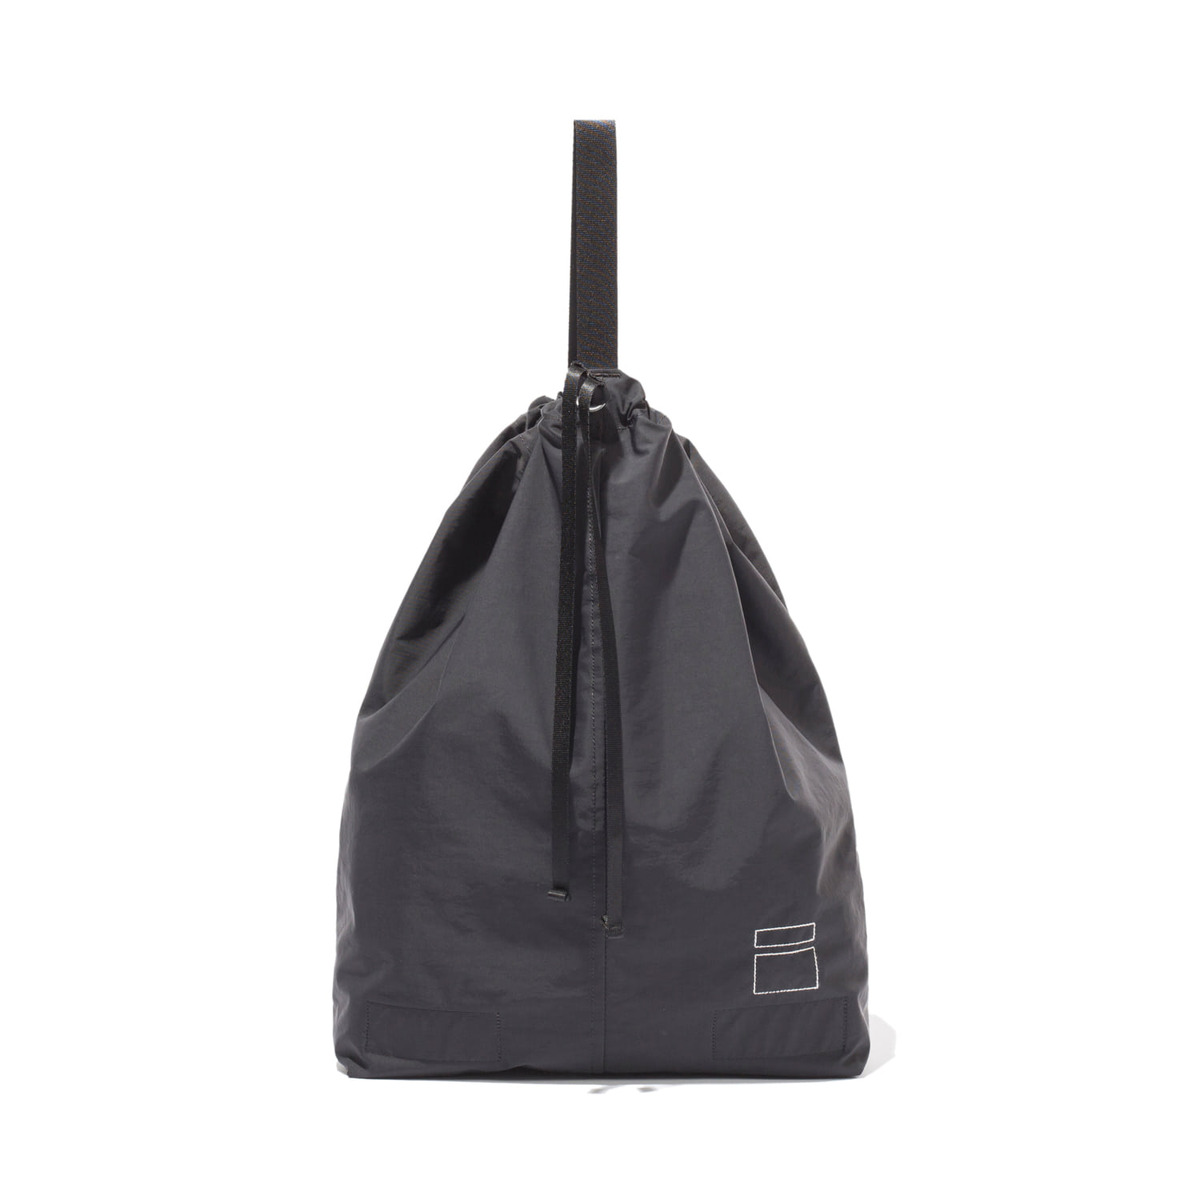 [BLANKOF] TLG 01 6L FISHERMAN BAG 6 'BLACK'